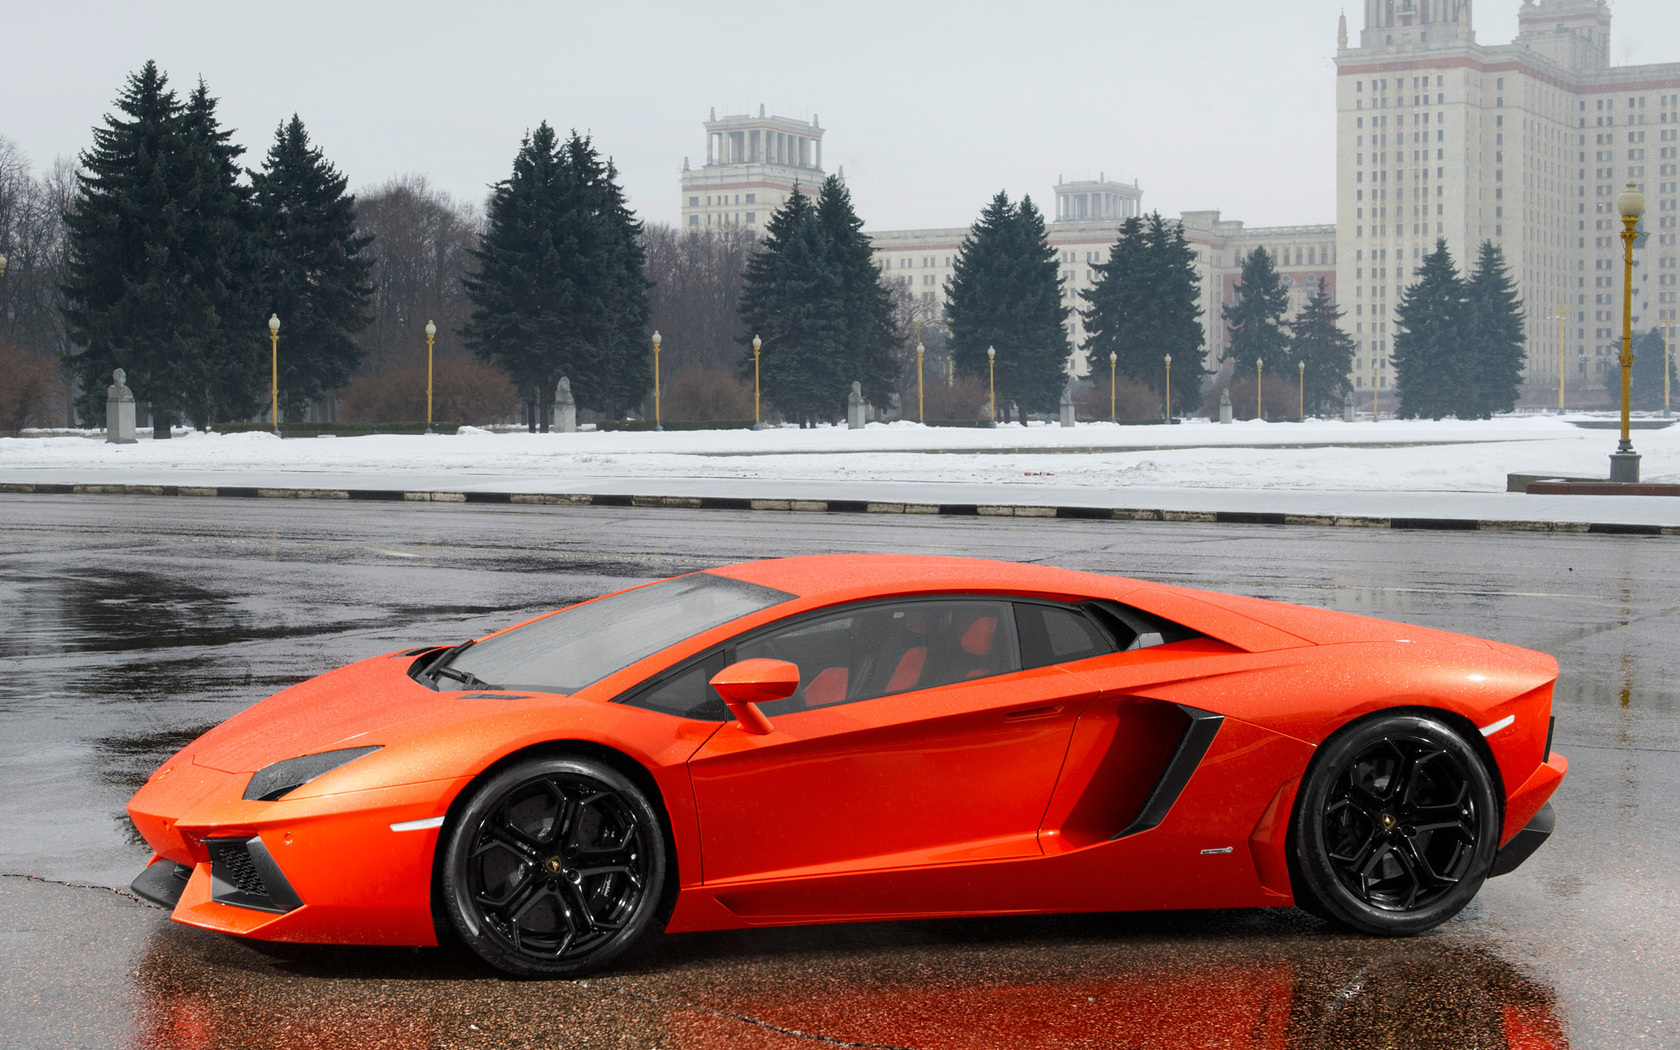 lamborghini aventador lp700 4 Wallpaper 20481536 HD Wallpapers 1680x1050